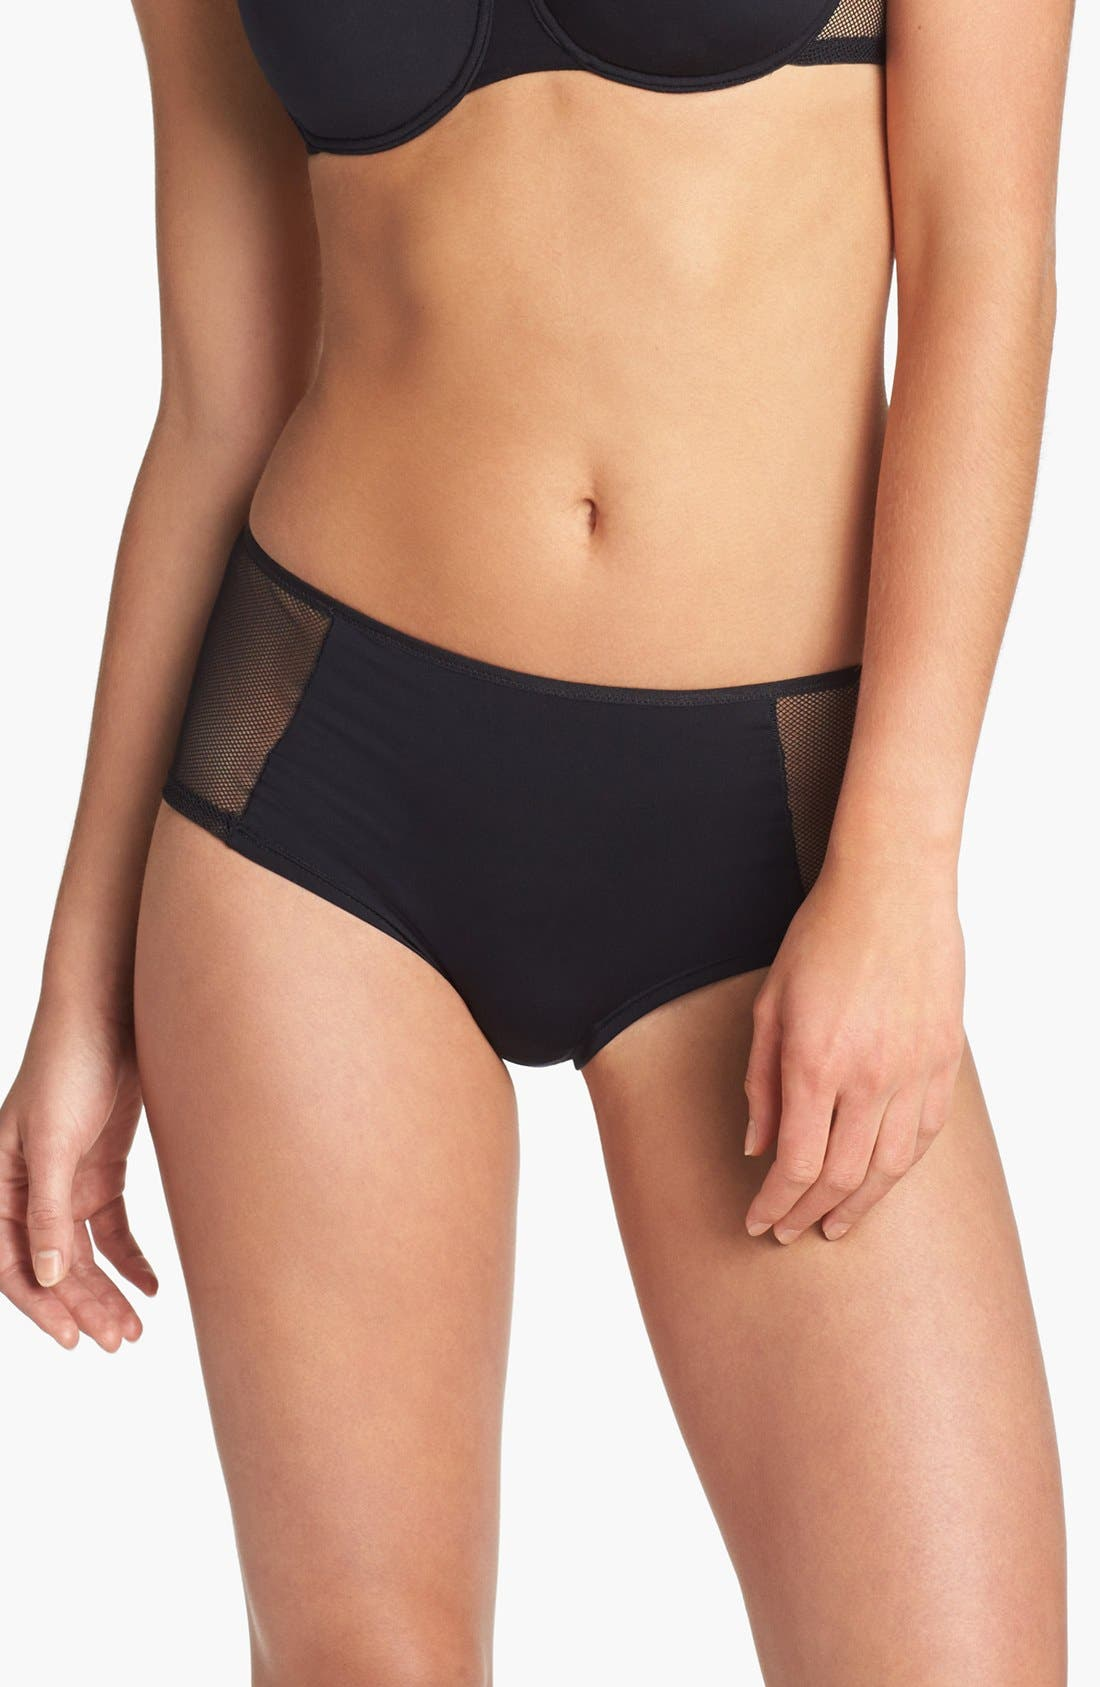 Alternate Image 1 Selected - Cosabella 'Queen of Spades' Hot Pant Briefs